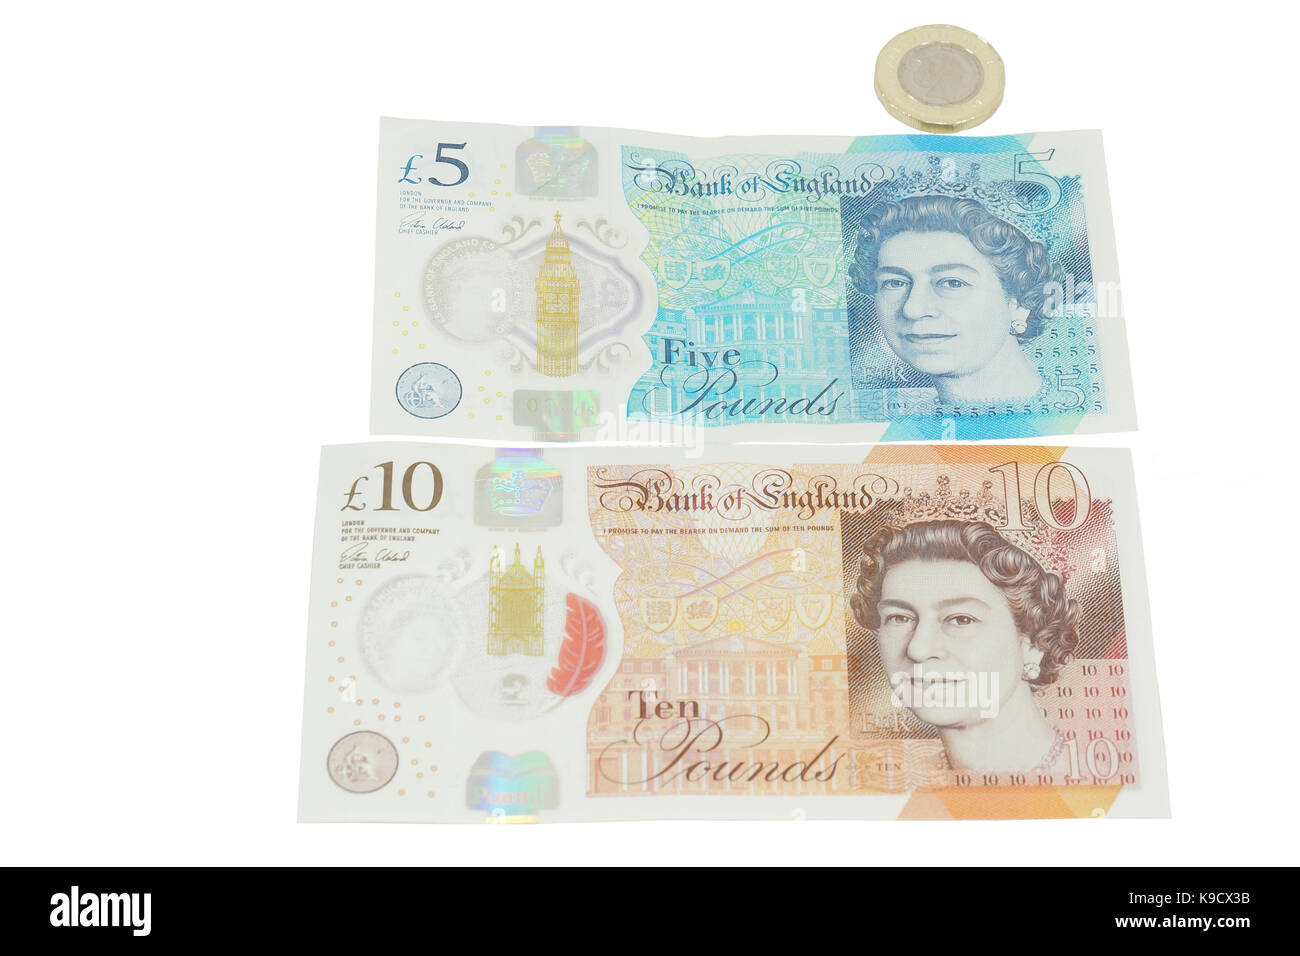 The newly introduced currency of the United Kingdom - The polymer ten pound (£10) note - Stock Image